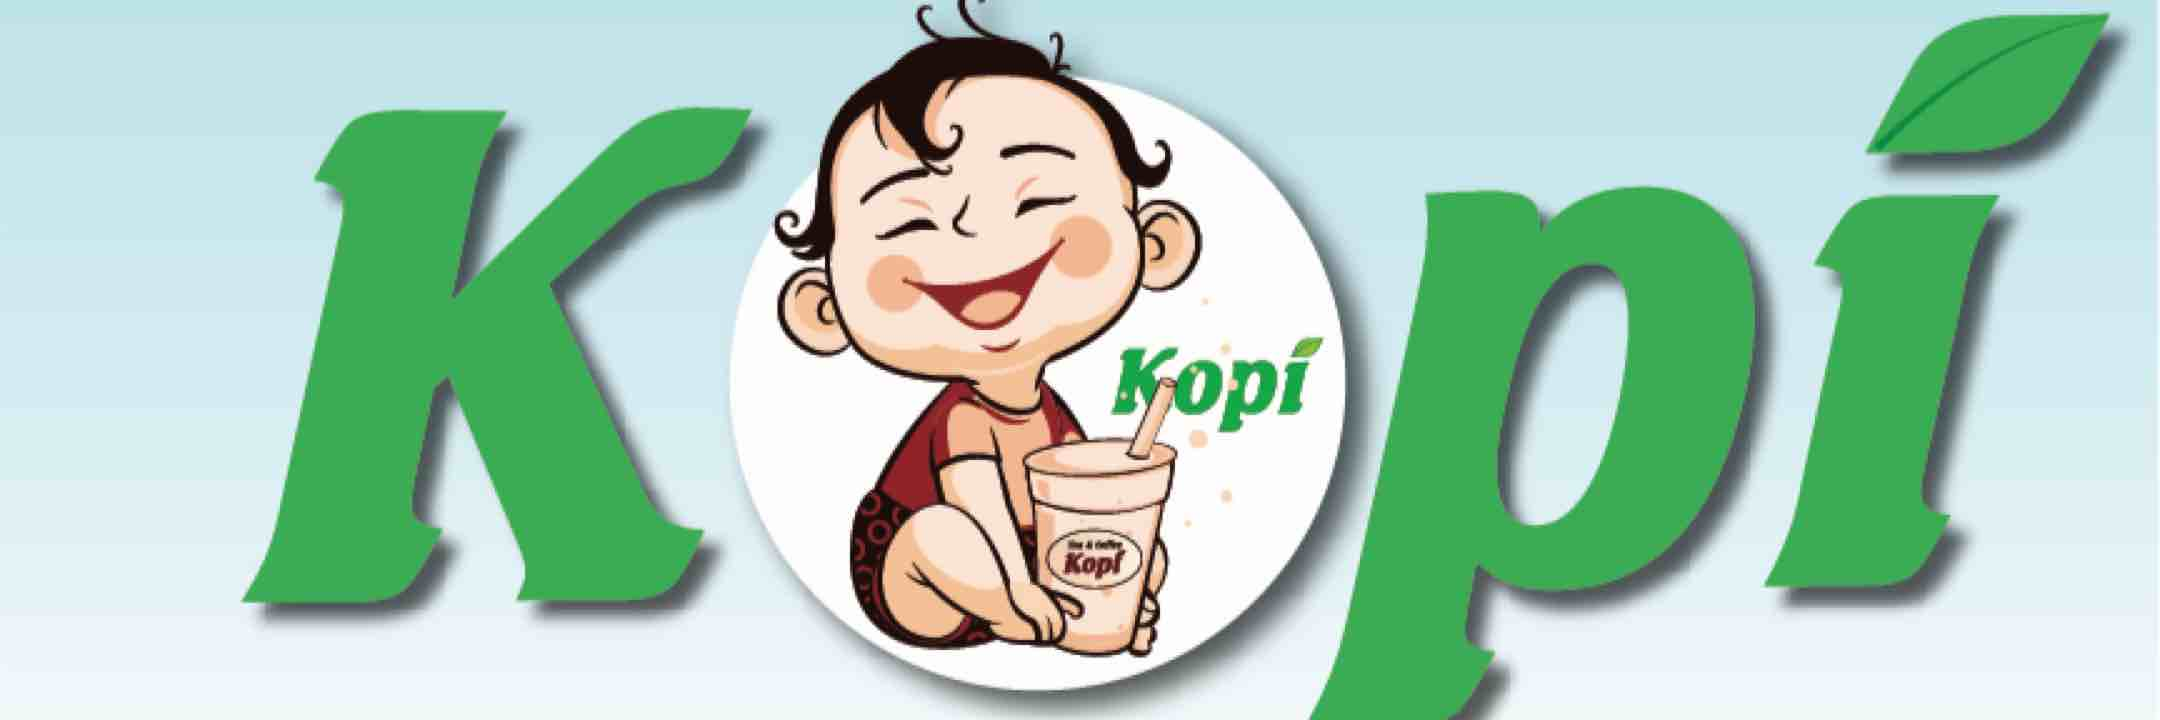 KOPi Tea & Coffee